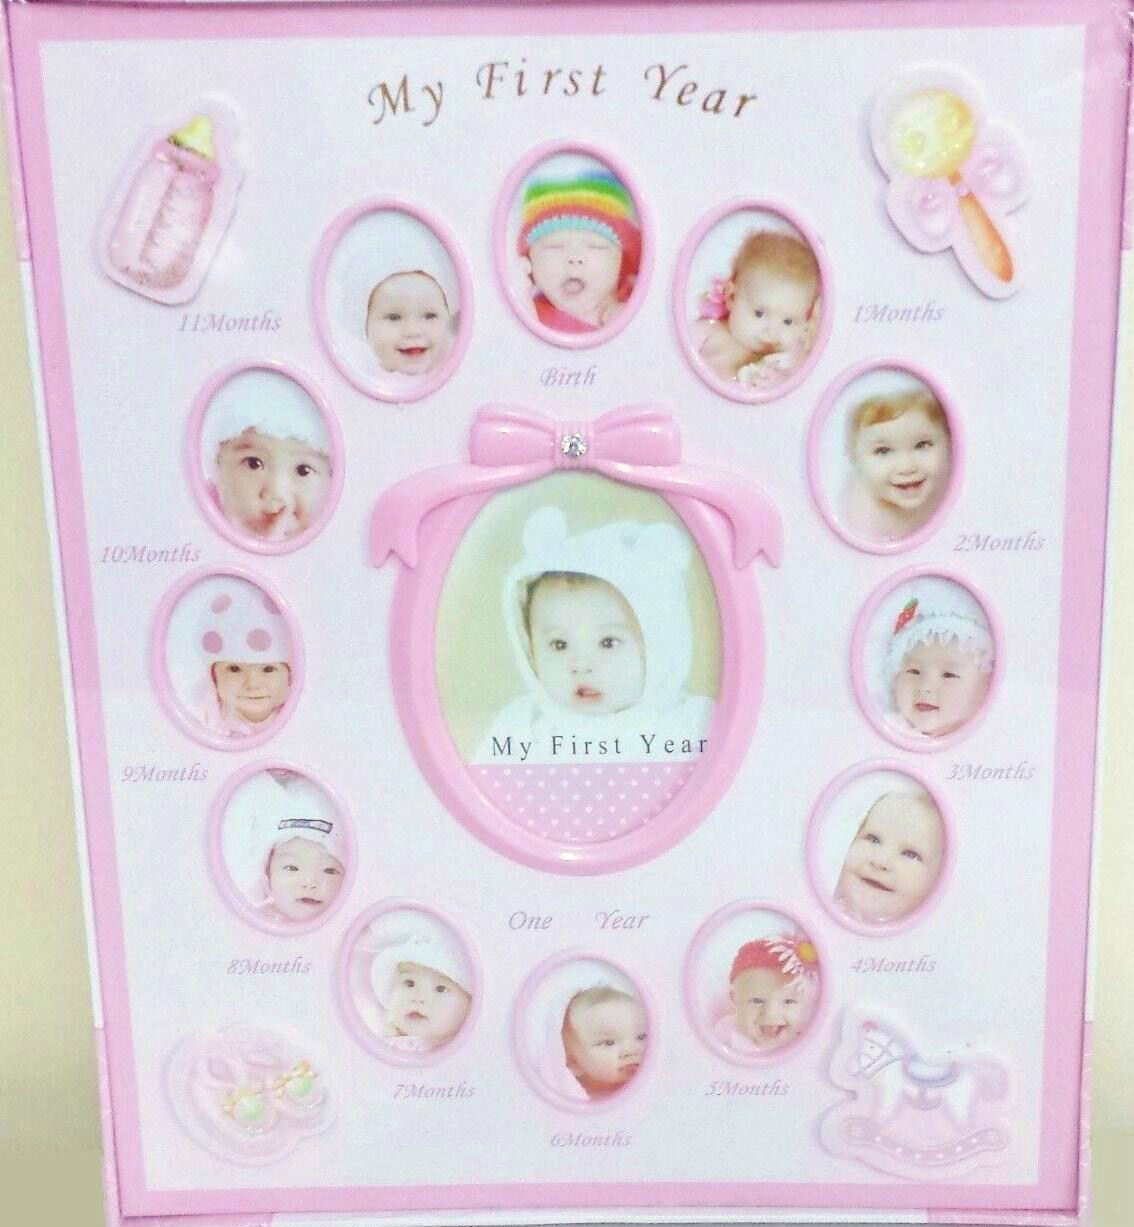 255373ccd0b6d Details about BABY Girl ALBUM 240 PHOTO MY FIRST YEAR Birth 1-12 Moments  Infant NEWBORN Shower